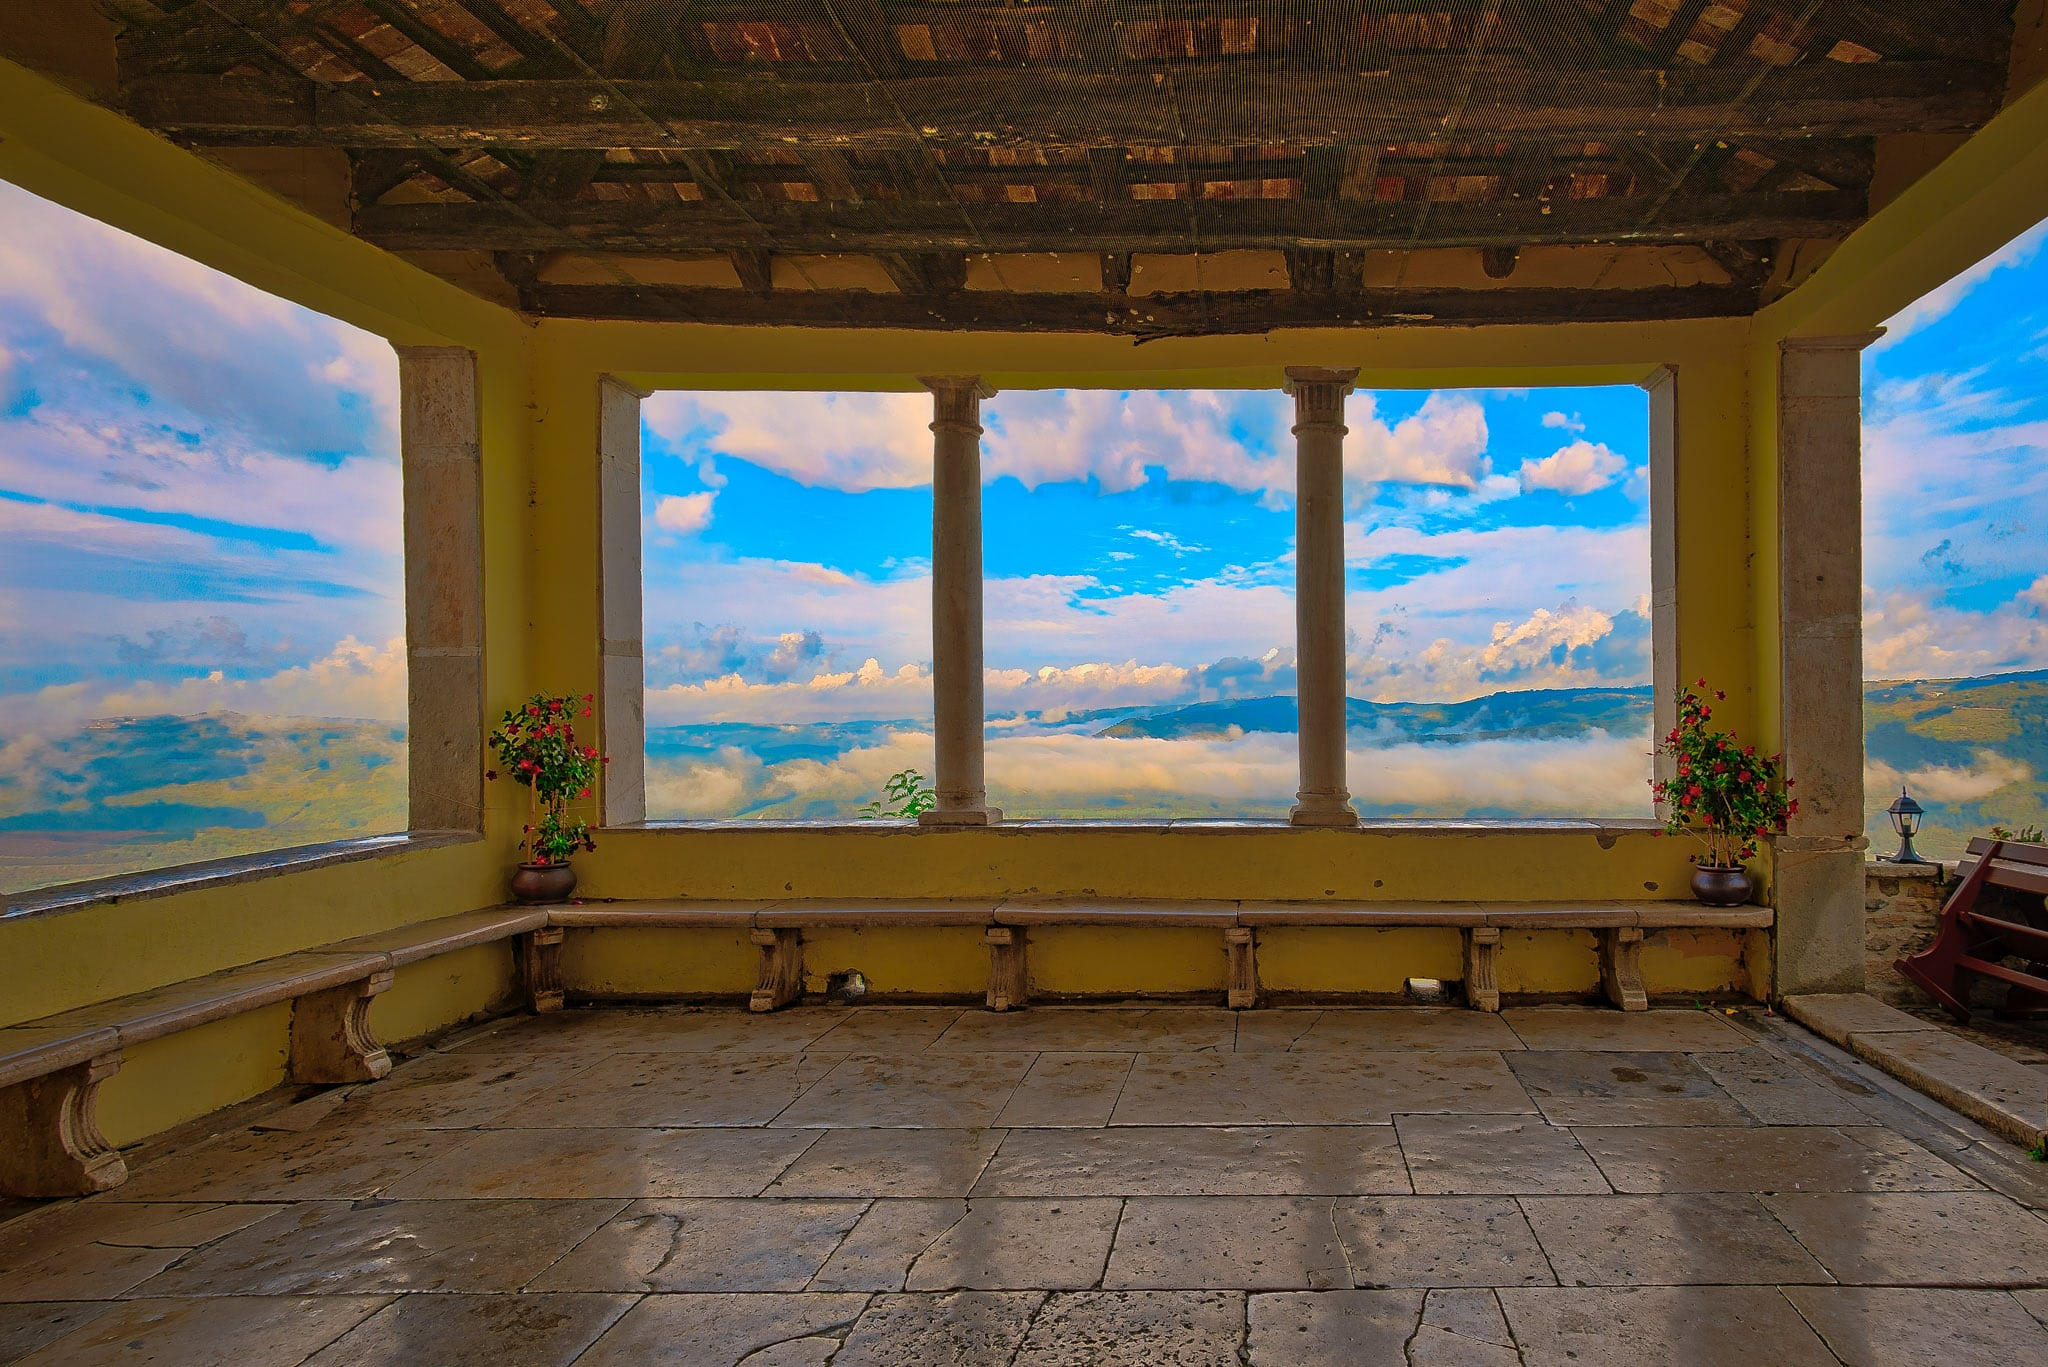 Looking out at the clouds from the Pod Voltom terrace in the Medieval Istrian village of Motovun, Croatia.